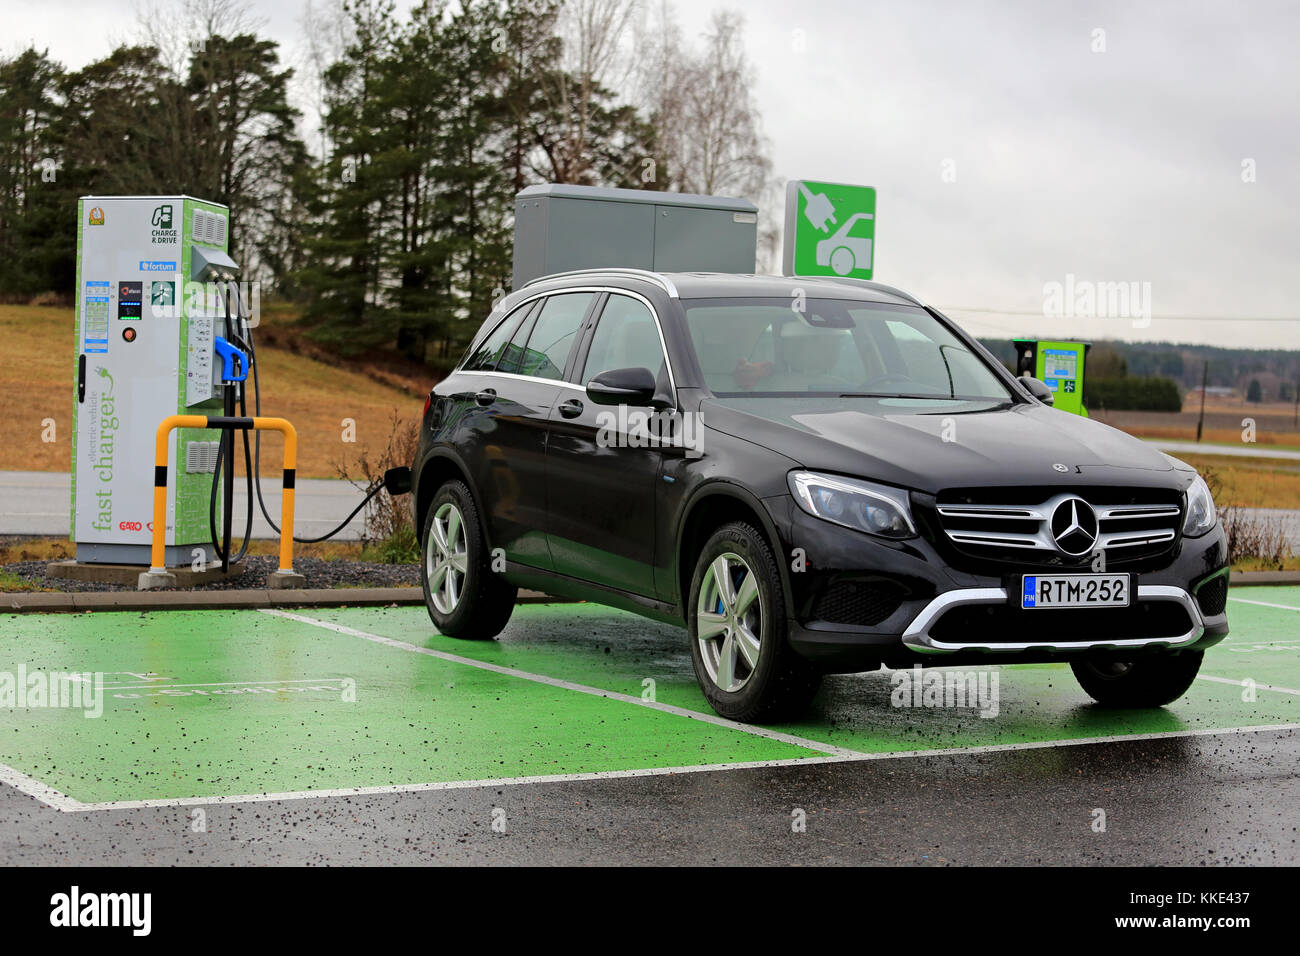 Ev charging station stock photos ev charging station for Mercedes benz service charges